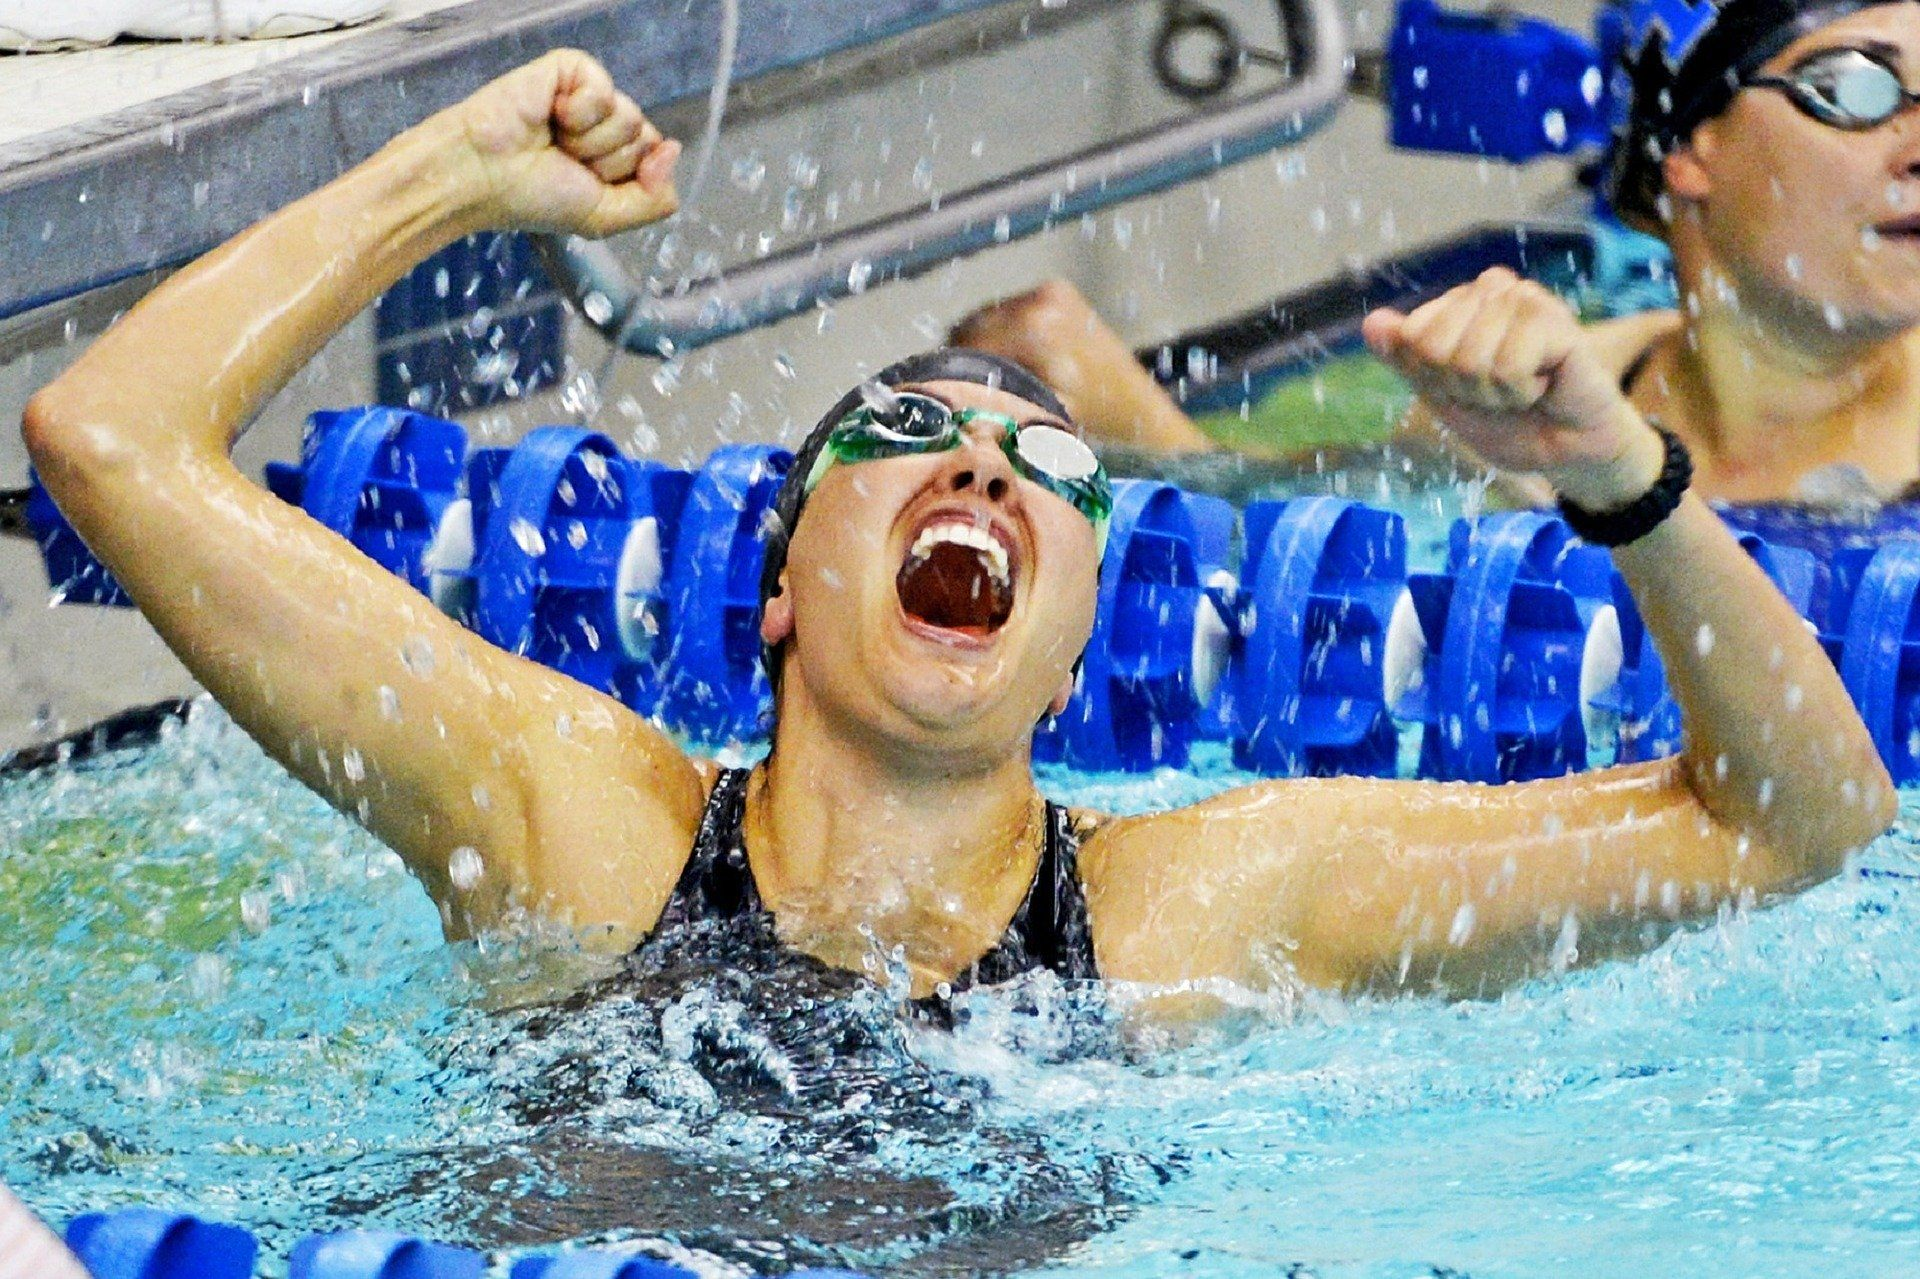 Swimmer celebrating a win